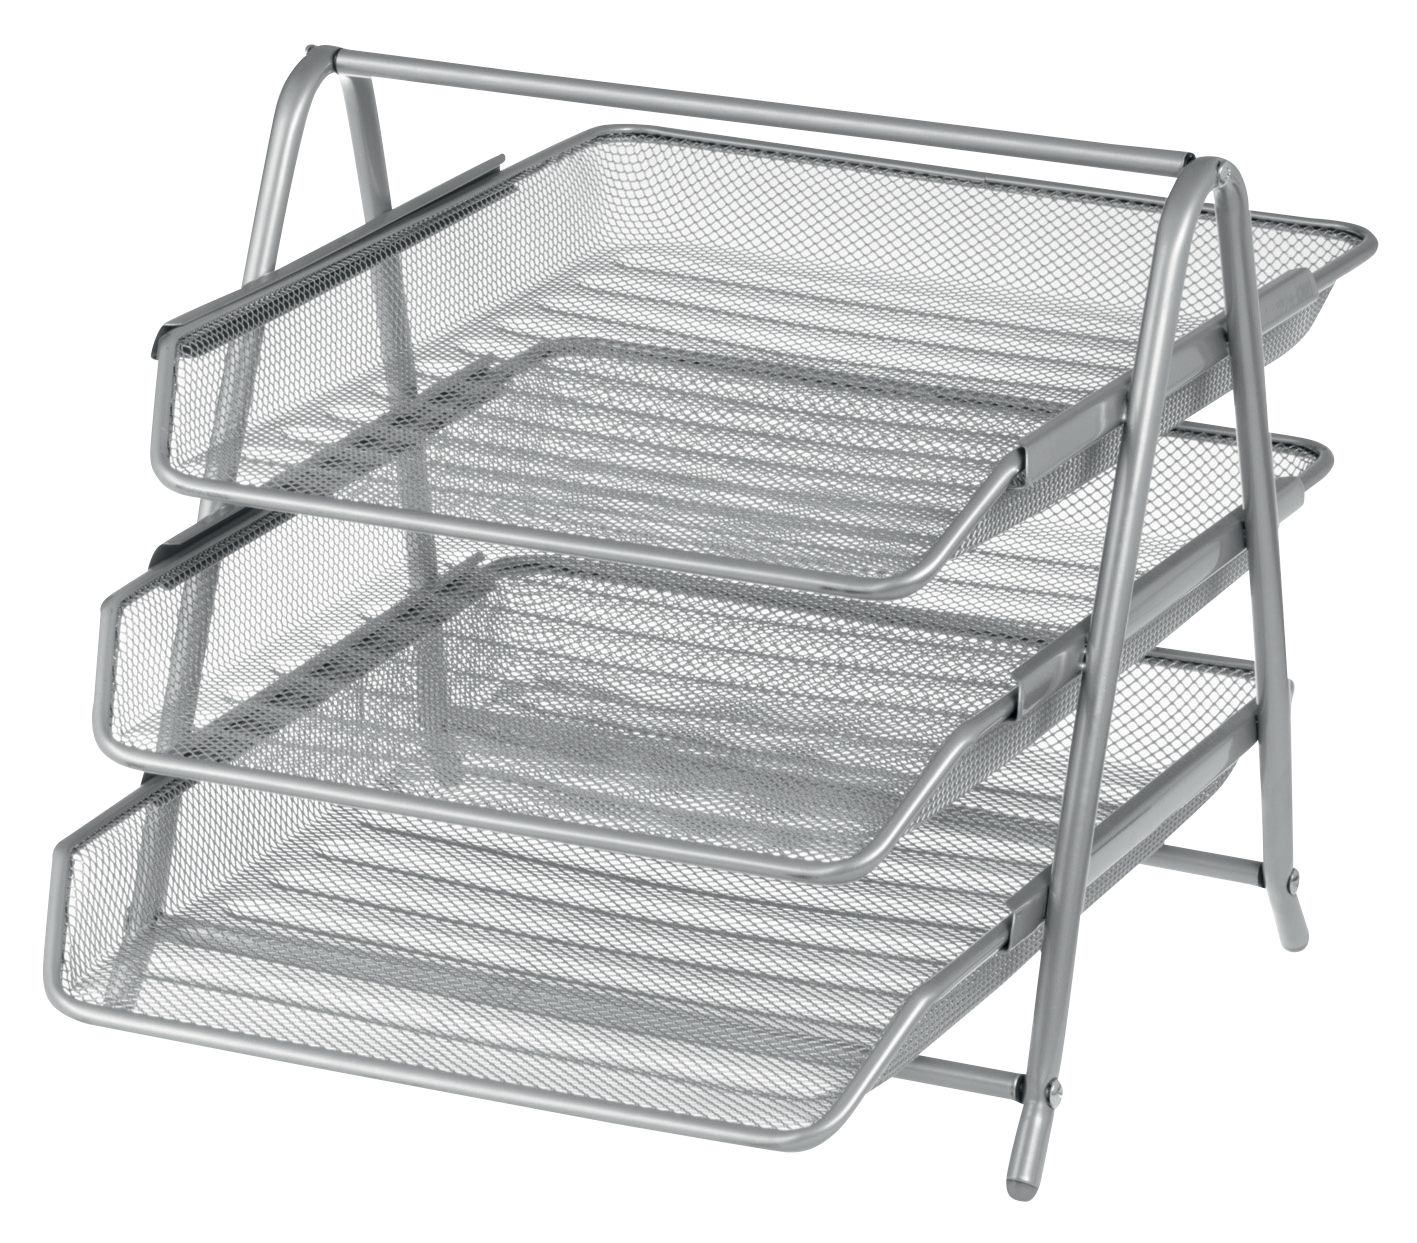 Design Ideas Mesh Letter Tray: Office Depot Executive Mesh 3 Tier Letter Tray - Silver